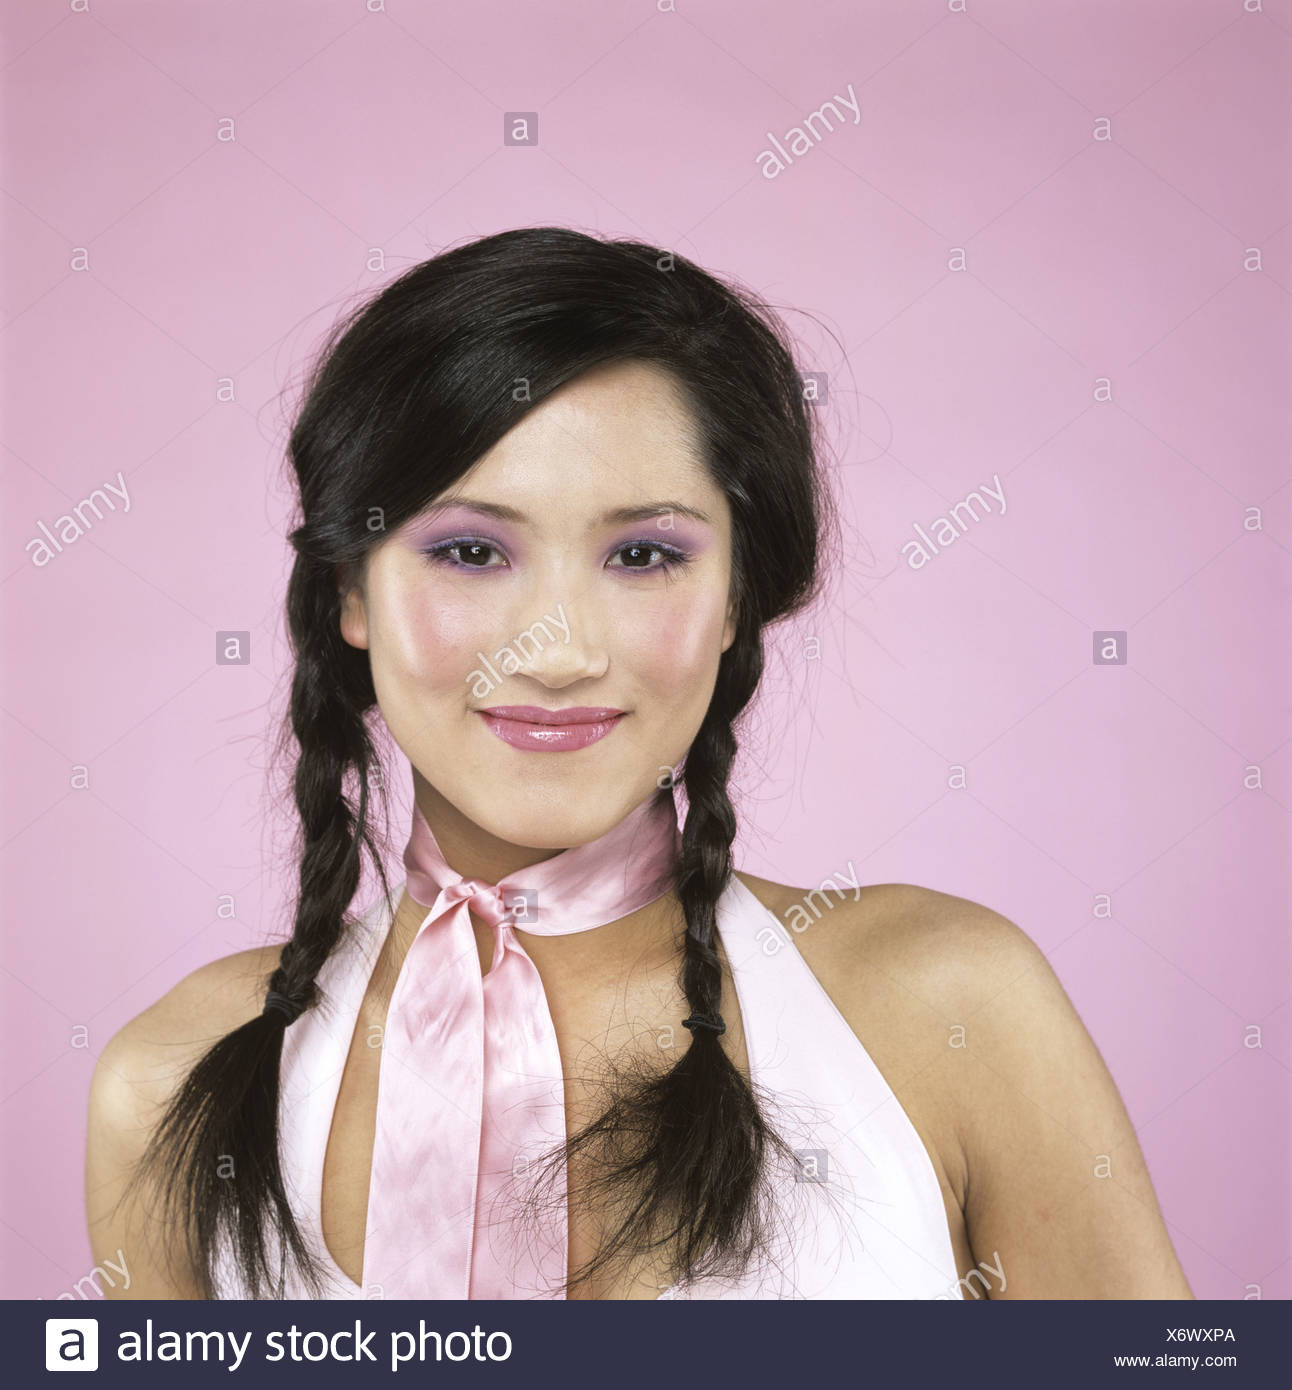 Young woman smiling, close-up - Stock Image